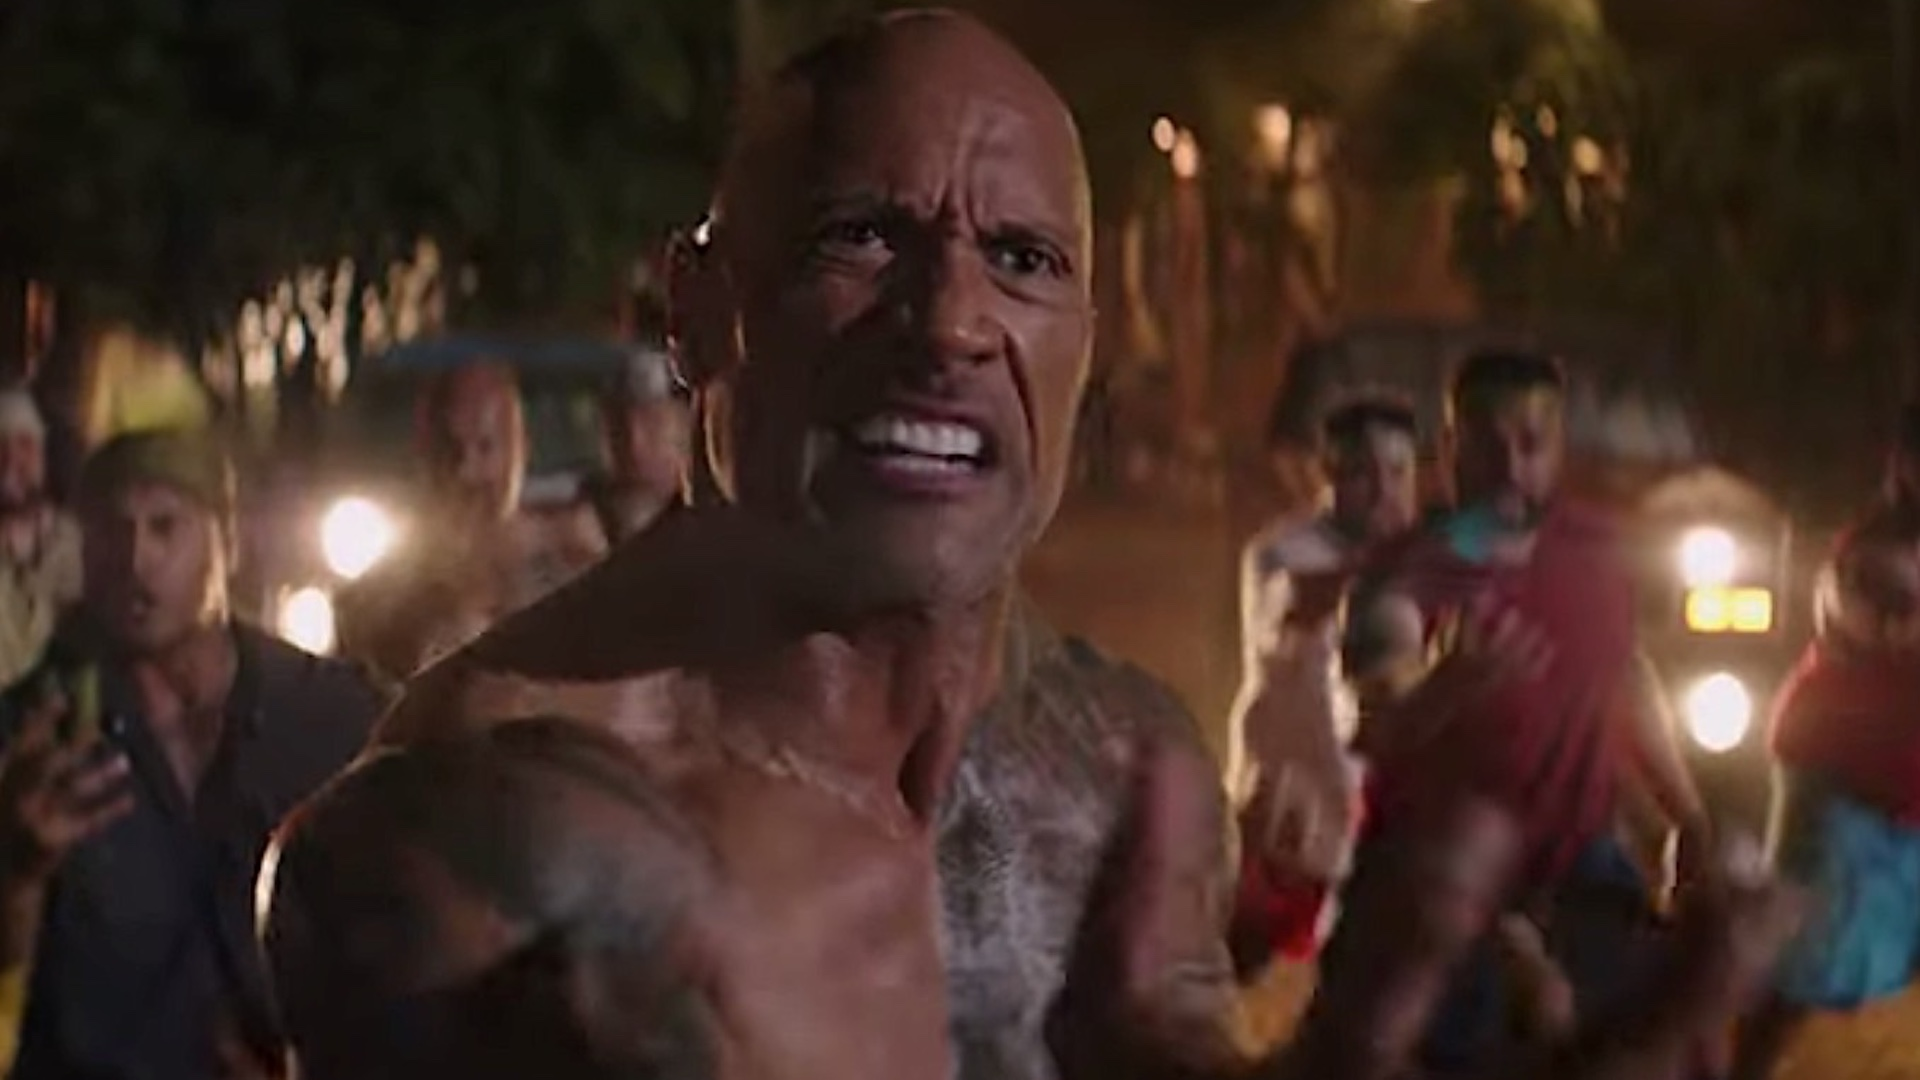 dwayne-johnson-describes-a-brutal-scene-from-hobbs-shaw-that-had-to-be-cut-out-social.jpg